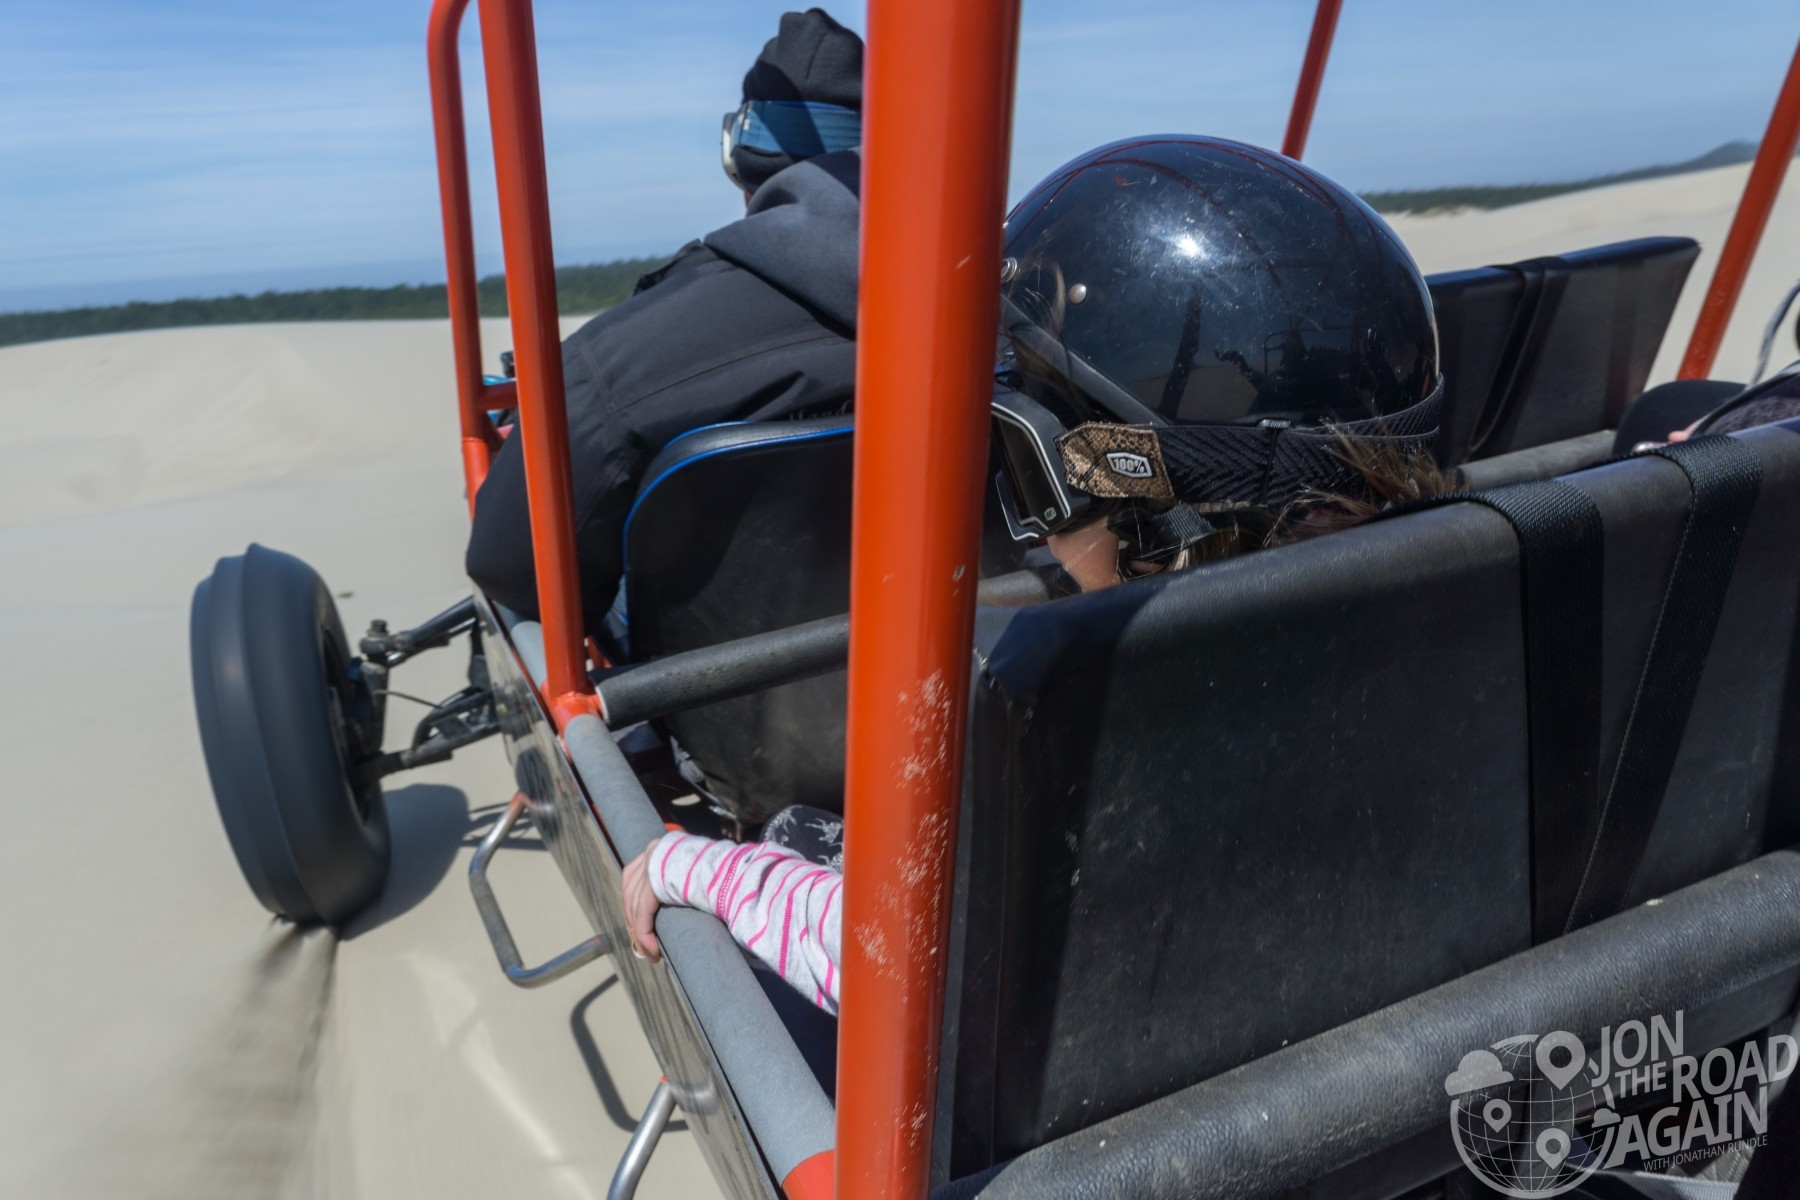 all ages fun at sandland adventures